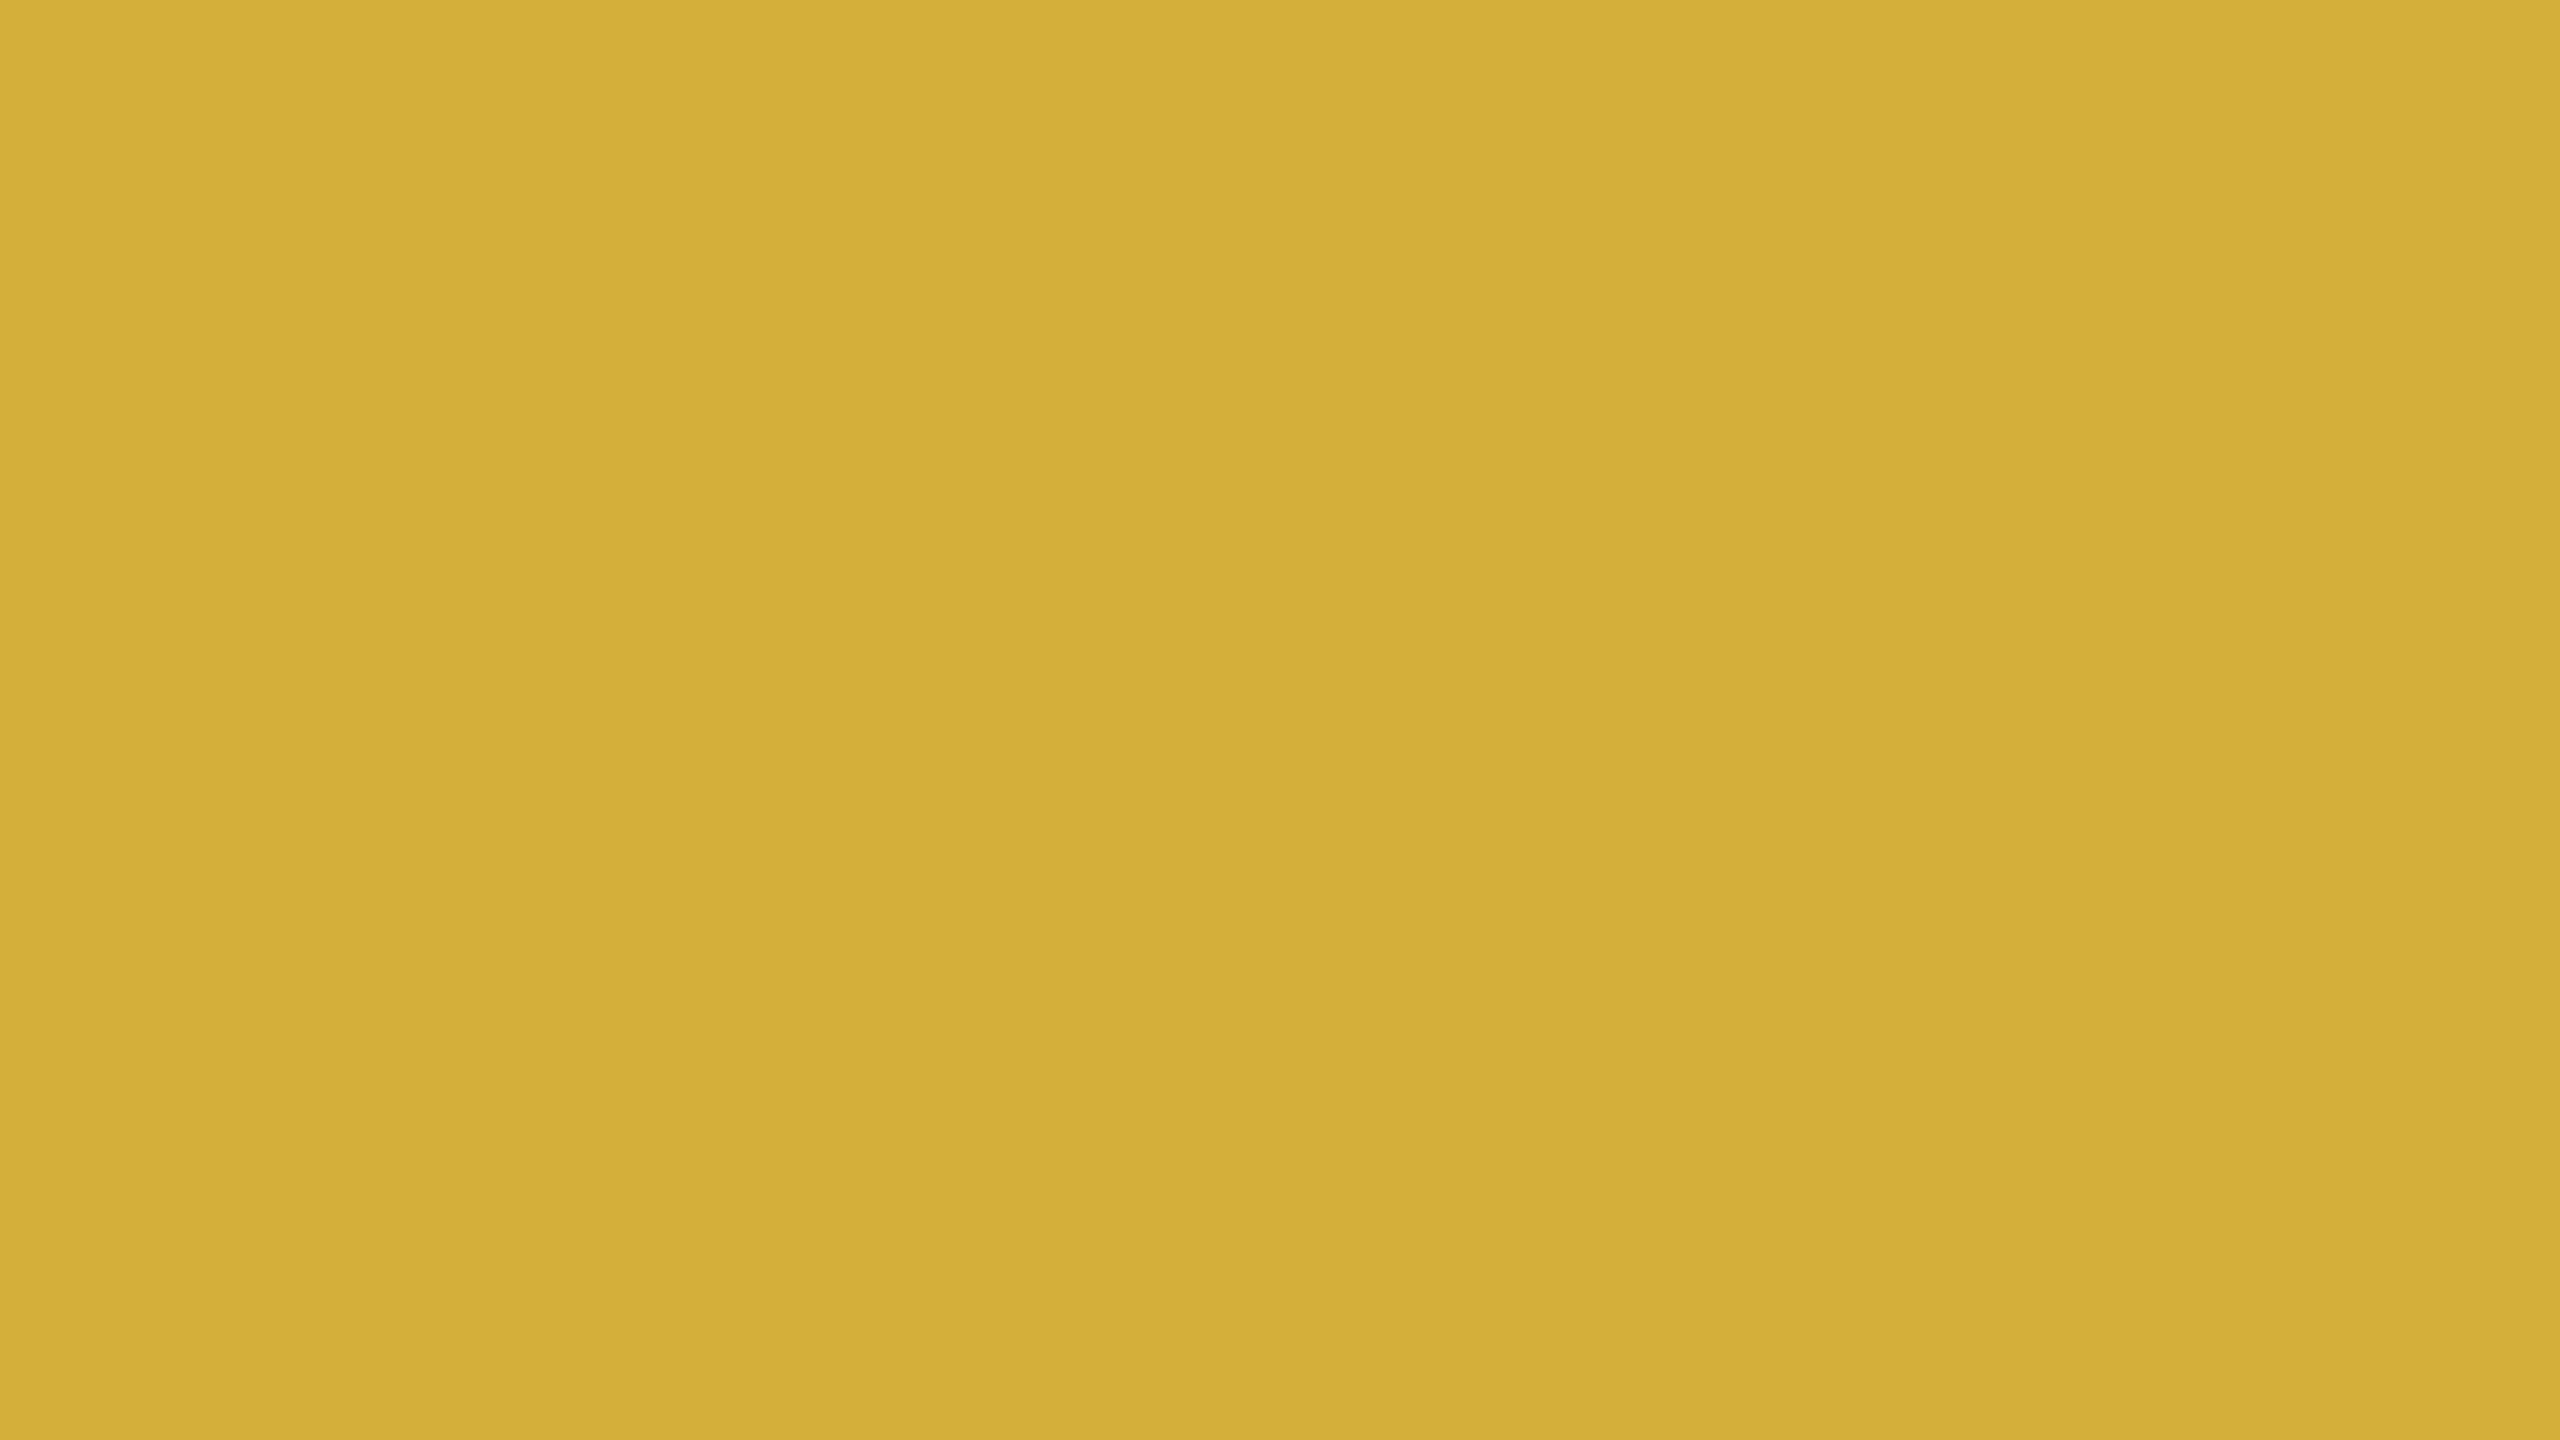 Solid Gold Color Background Images amp Pictures   Becuo 2560x1440